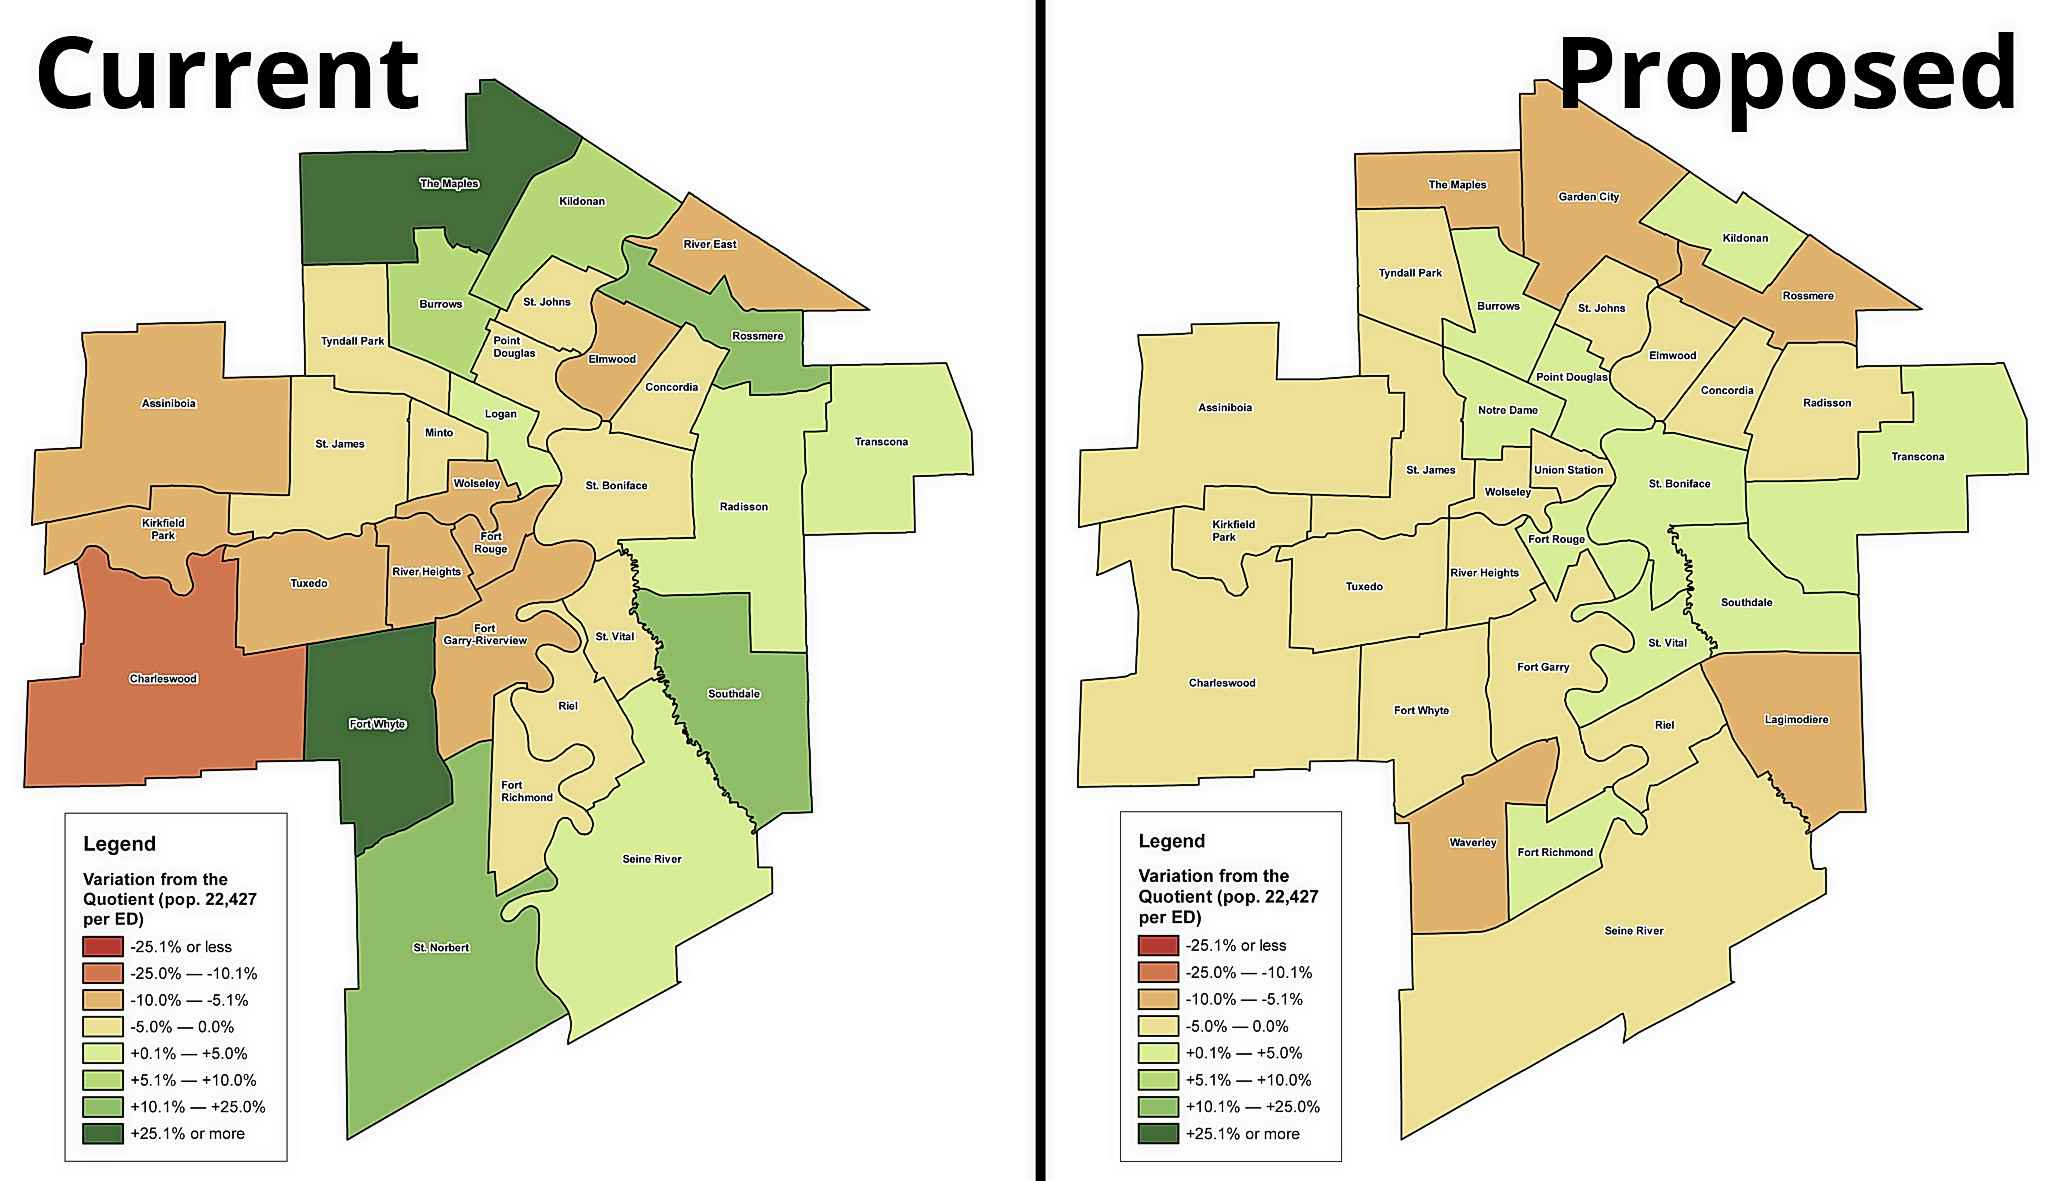 Current and proposed electoral boundaries in Winnipeg. The color gradient displays the amount by which the population of each electoral division is below (red) or above (green) the quotient of 22,427 people. (Supplied)